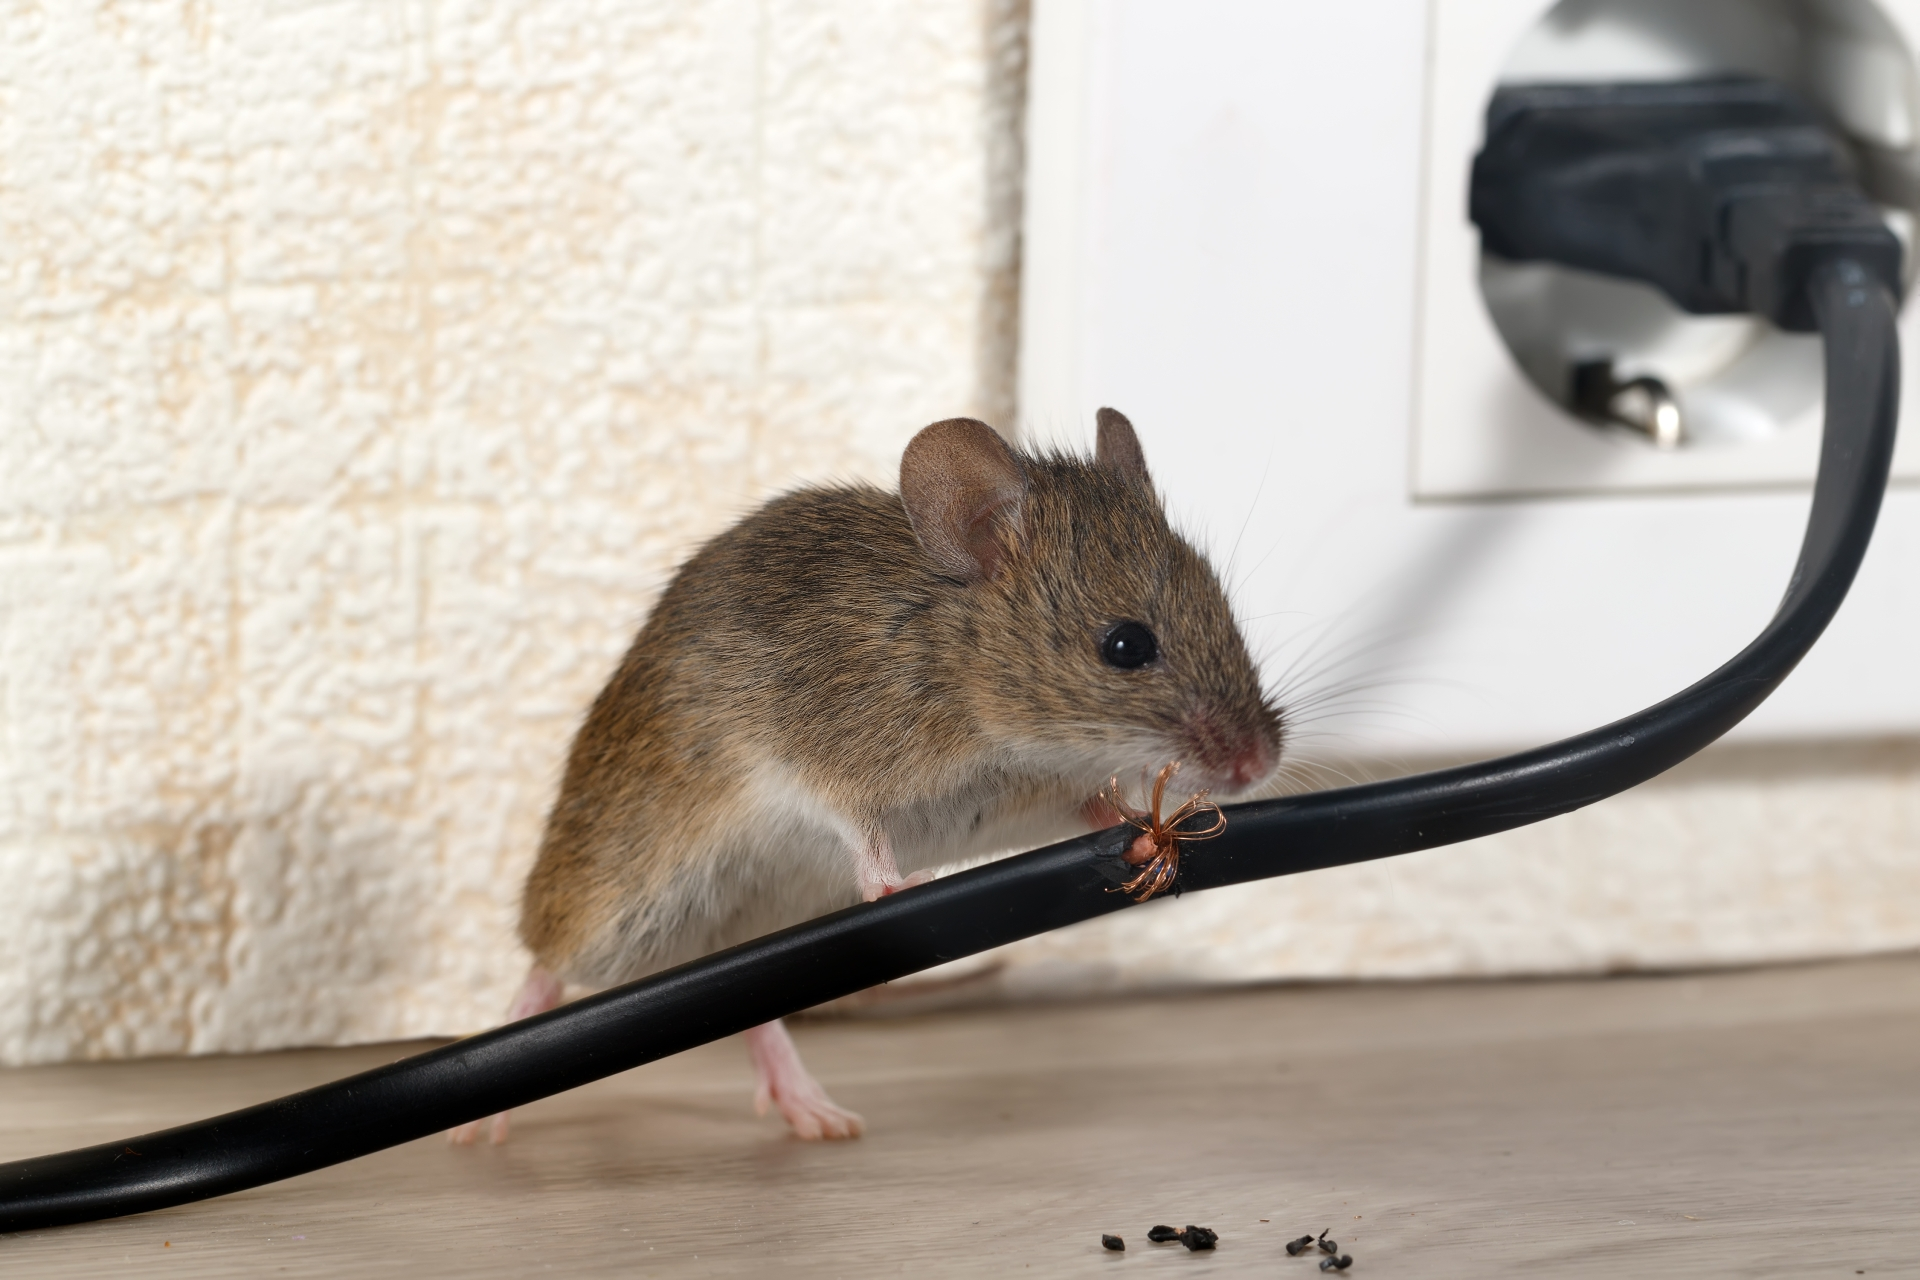 Mice Infestation, Pest Control in Olympic Park, E20. Call Now 020 8166 9746